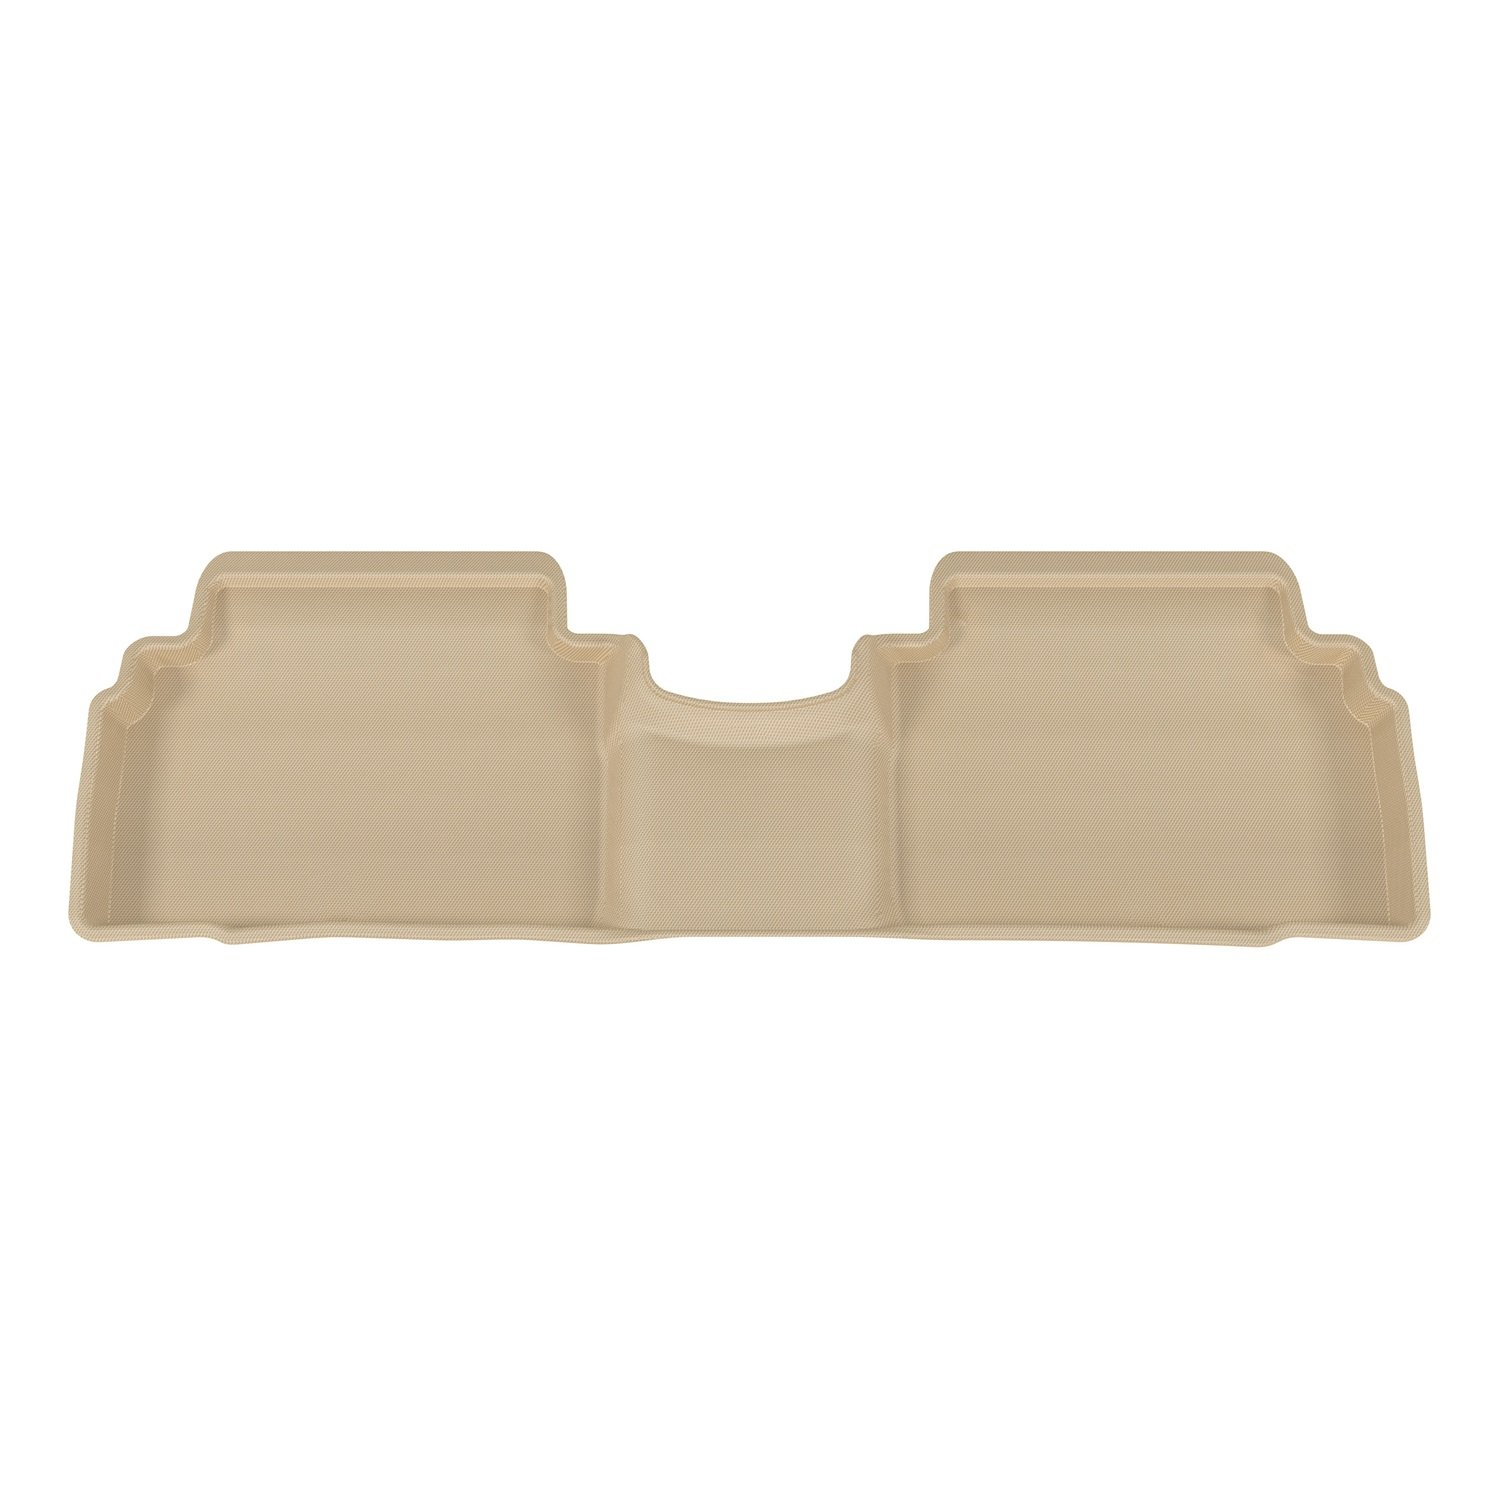 Aries HY03321502 Tan Rear 3D Floor Liner 1 Piece